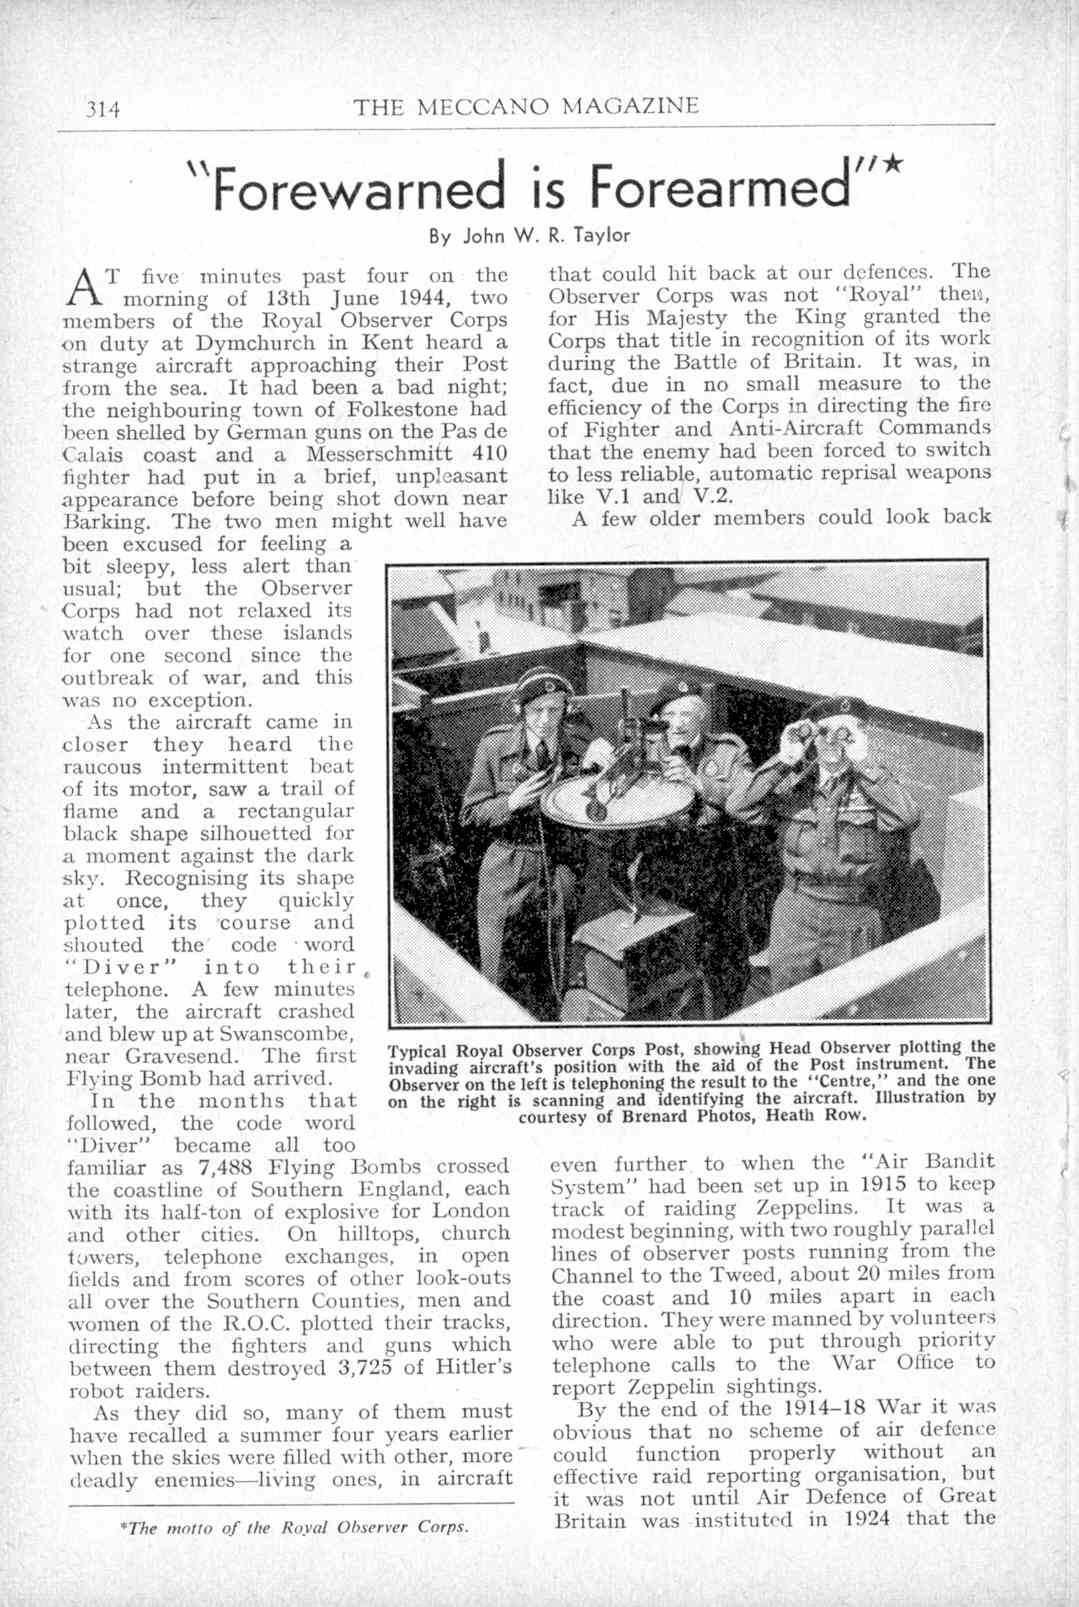 UK Meccano Magazine July 1951 Page 314